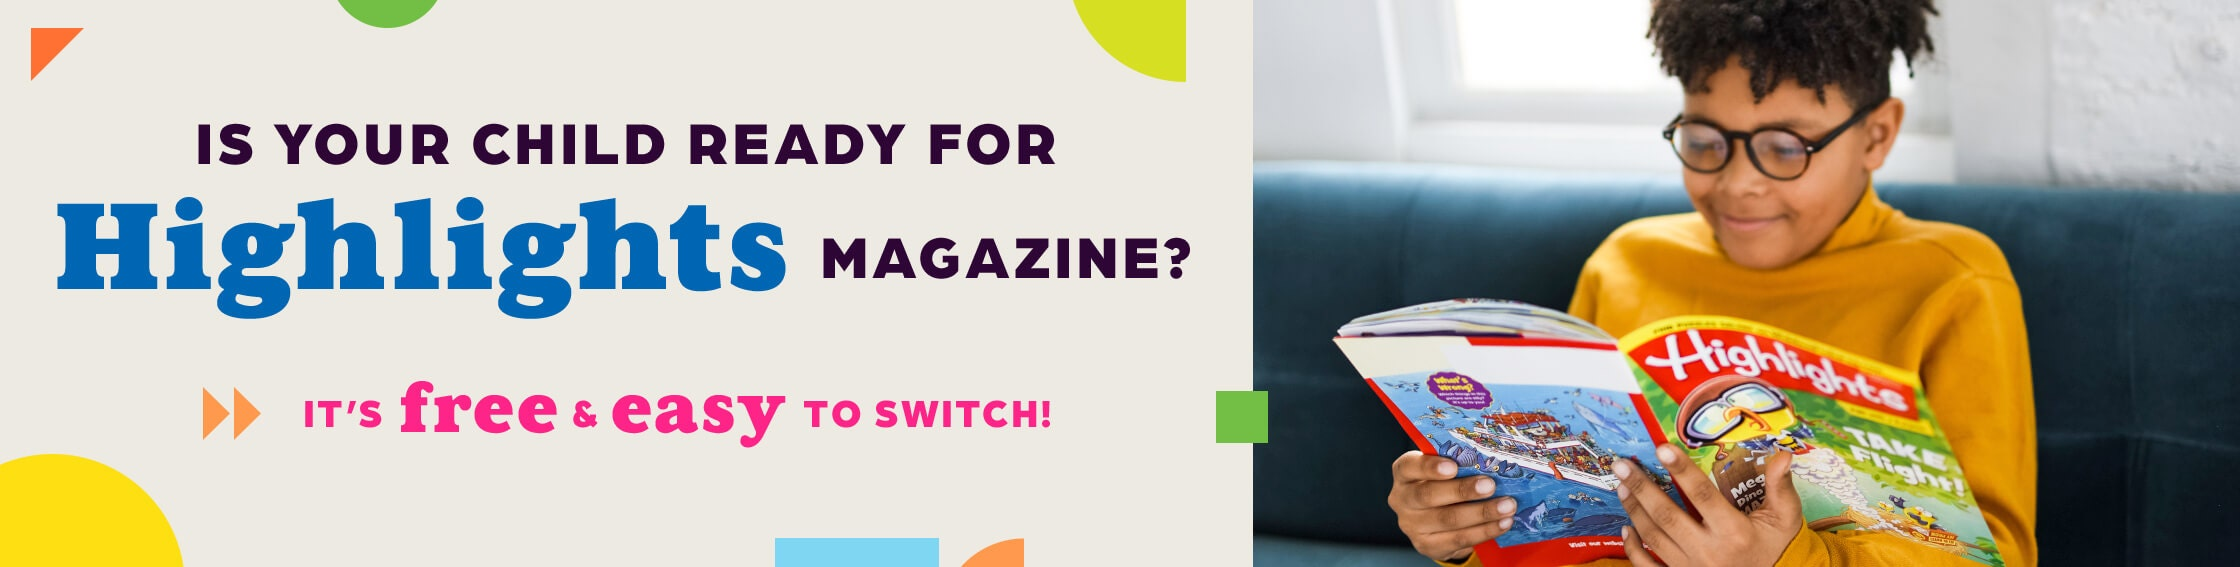 Ready for Highlights Magazine? It's FREE & EASY to Switch!